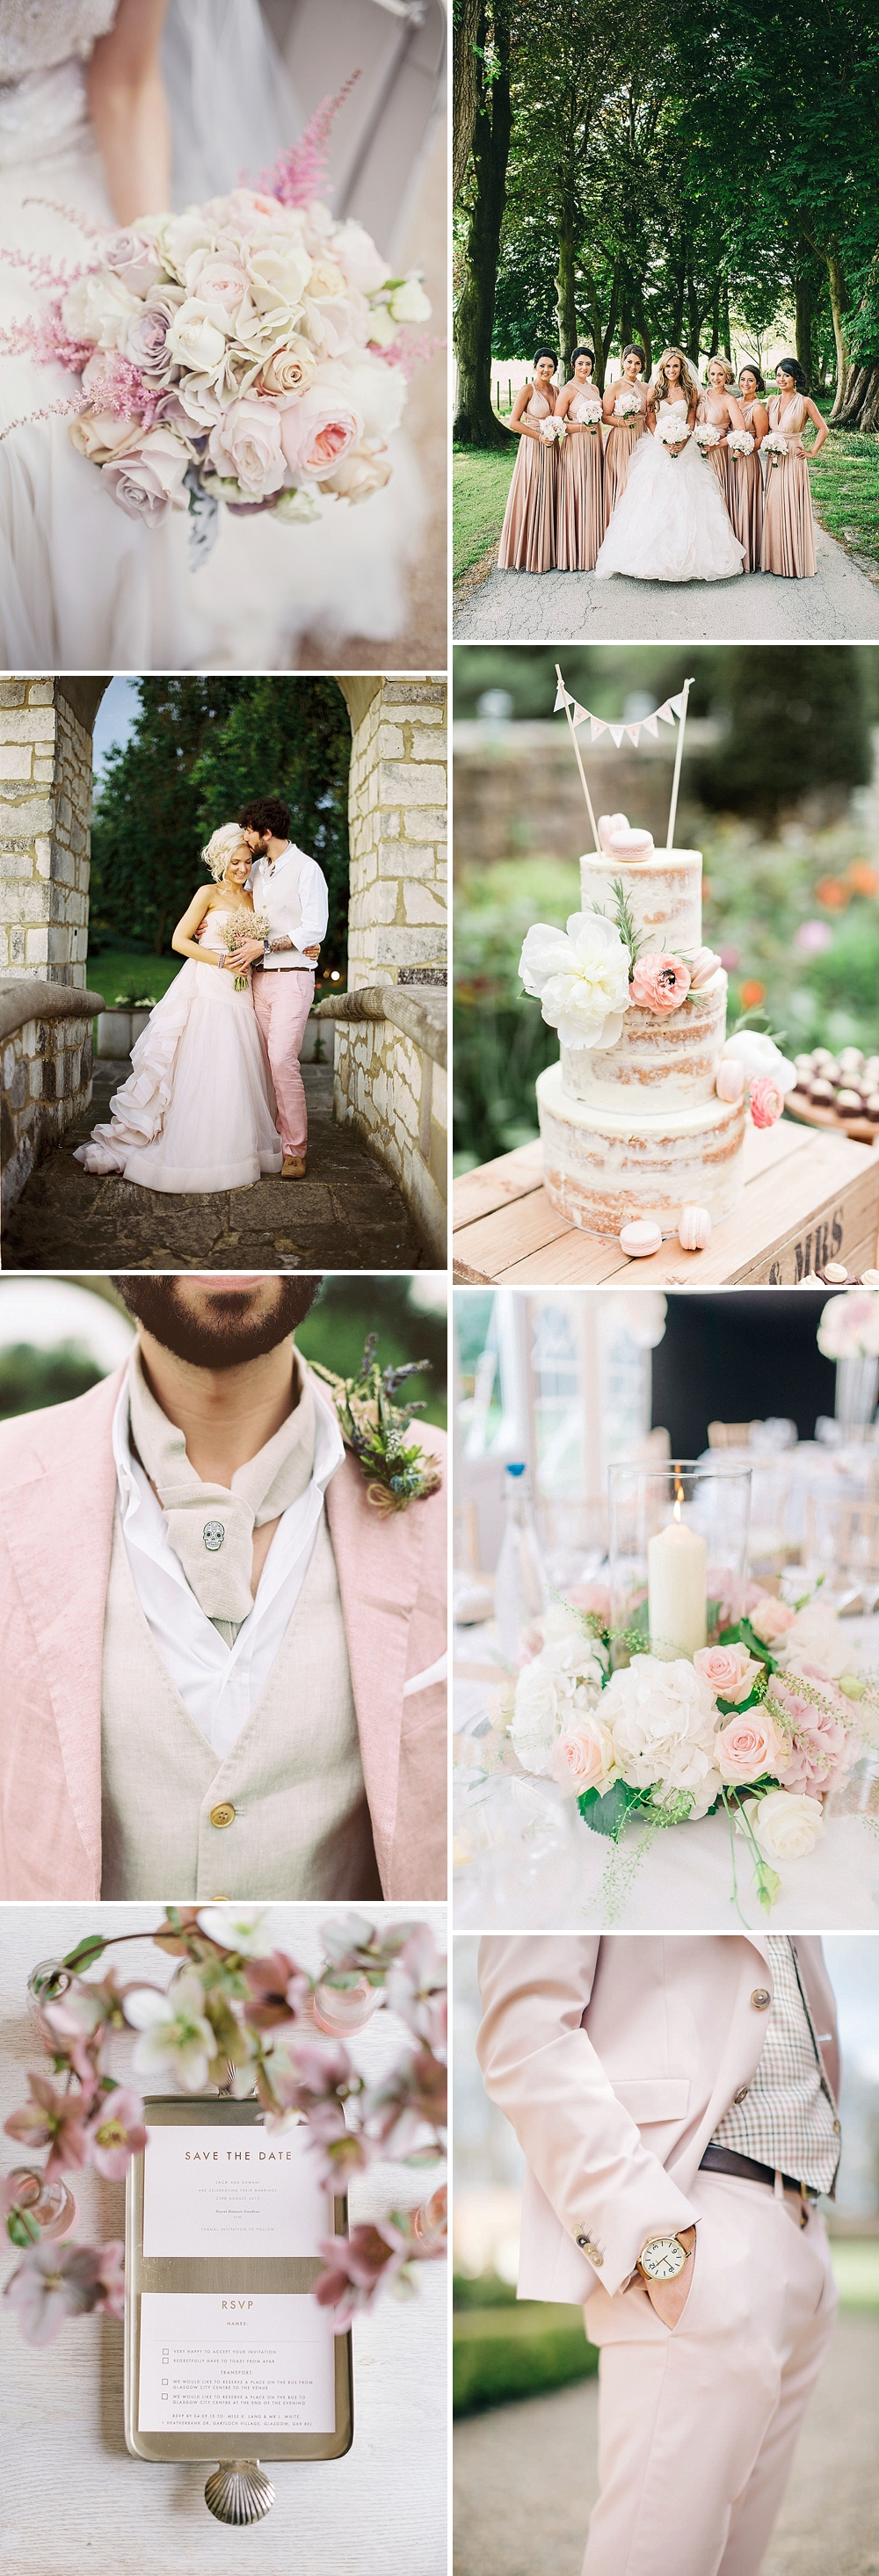 how to incorporate a blush colour theme into your wedding day stylishly and within budget through your bridesmaid dresses florals and decor